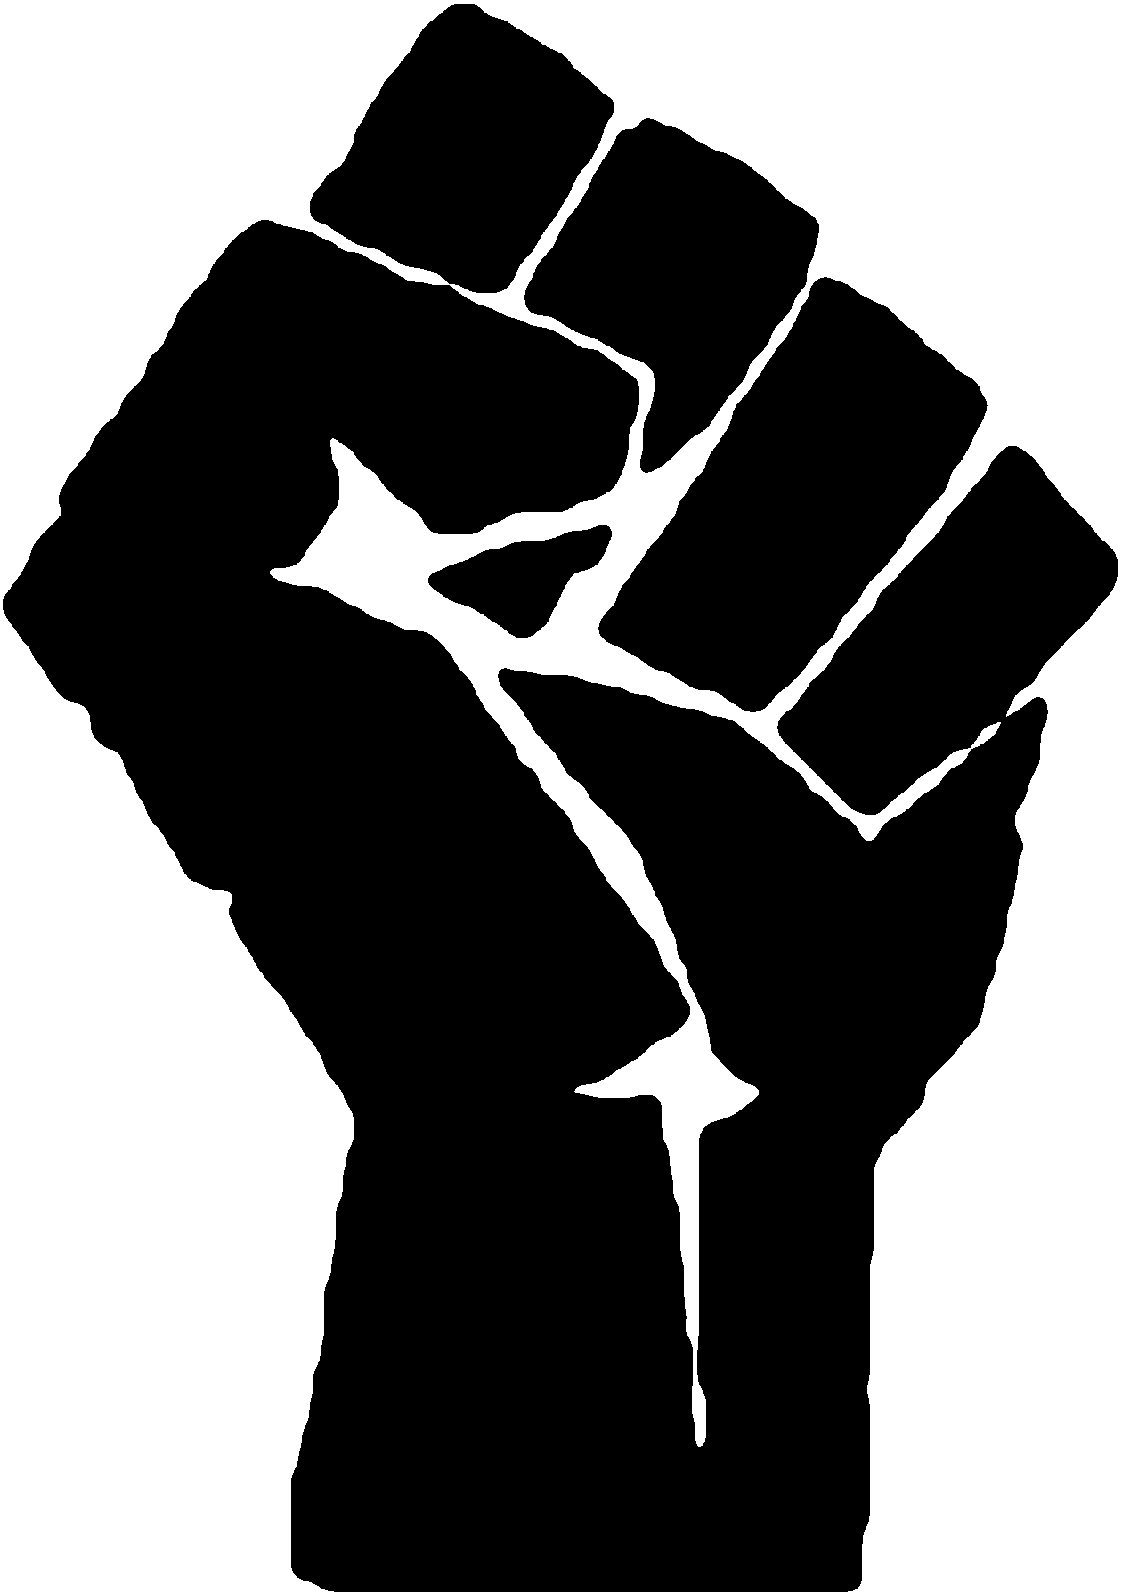 File:Fist.png.